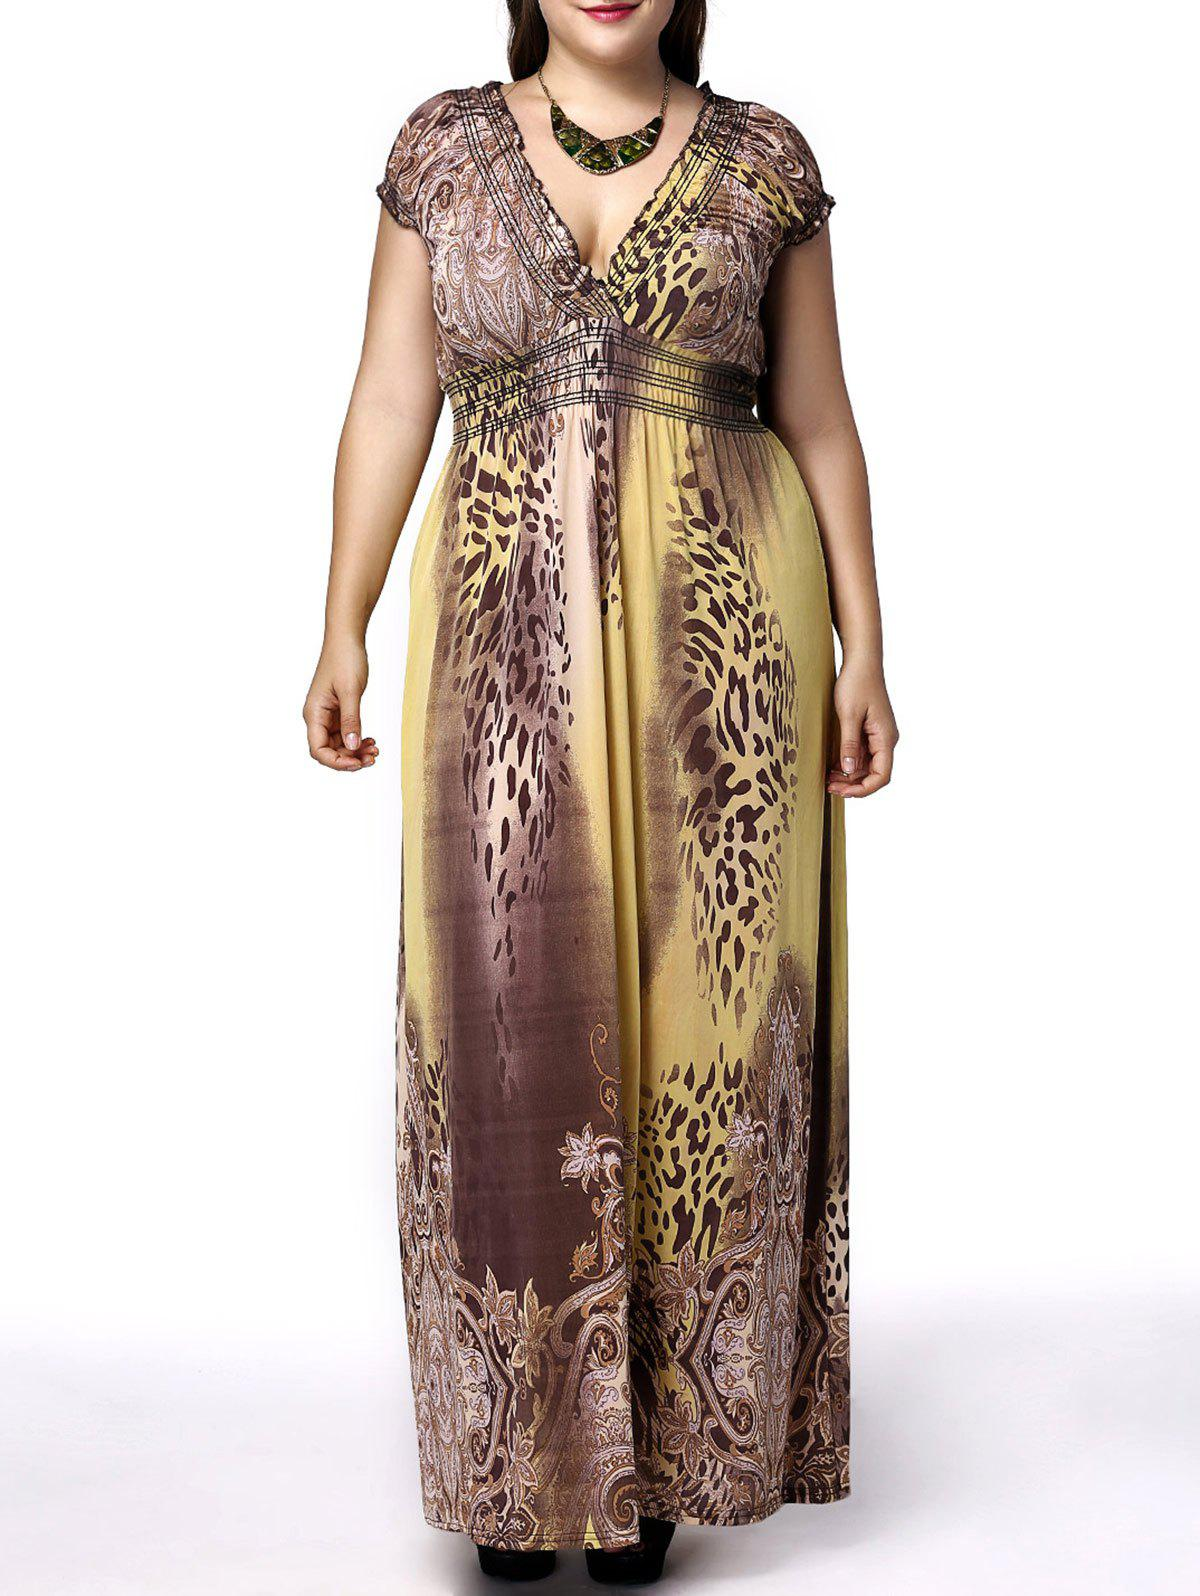 2018 Alluring Plus Size Short Sleeve Plunging Neck Leopard Print